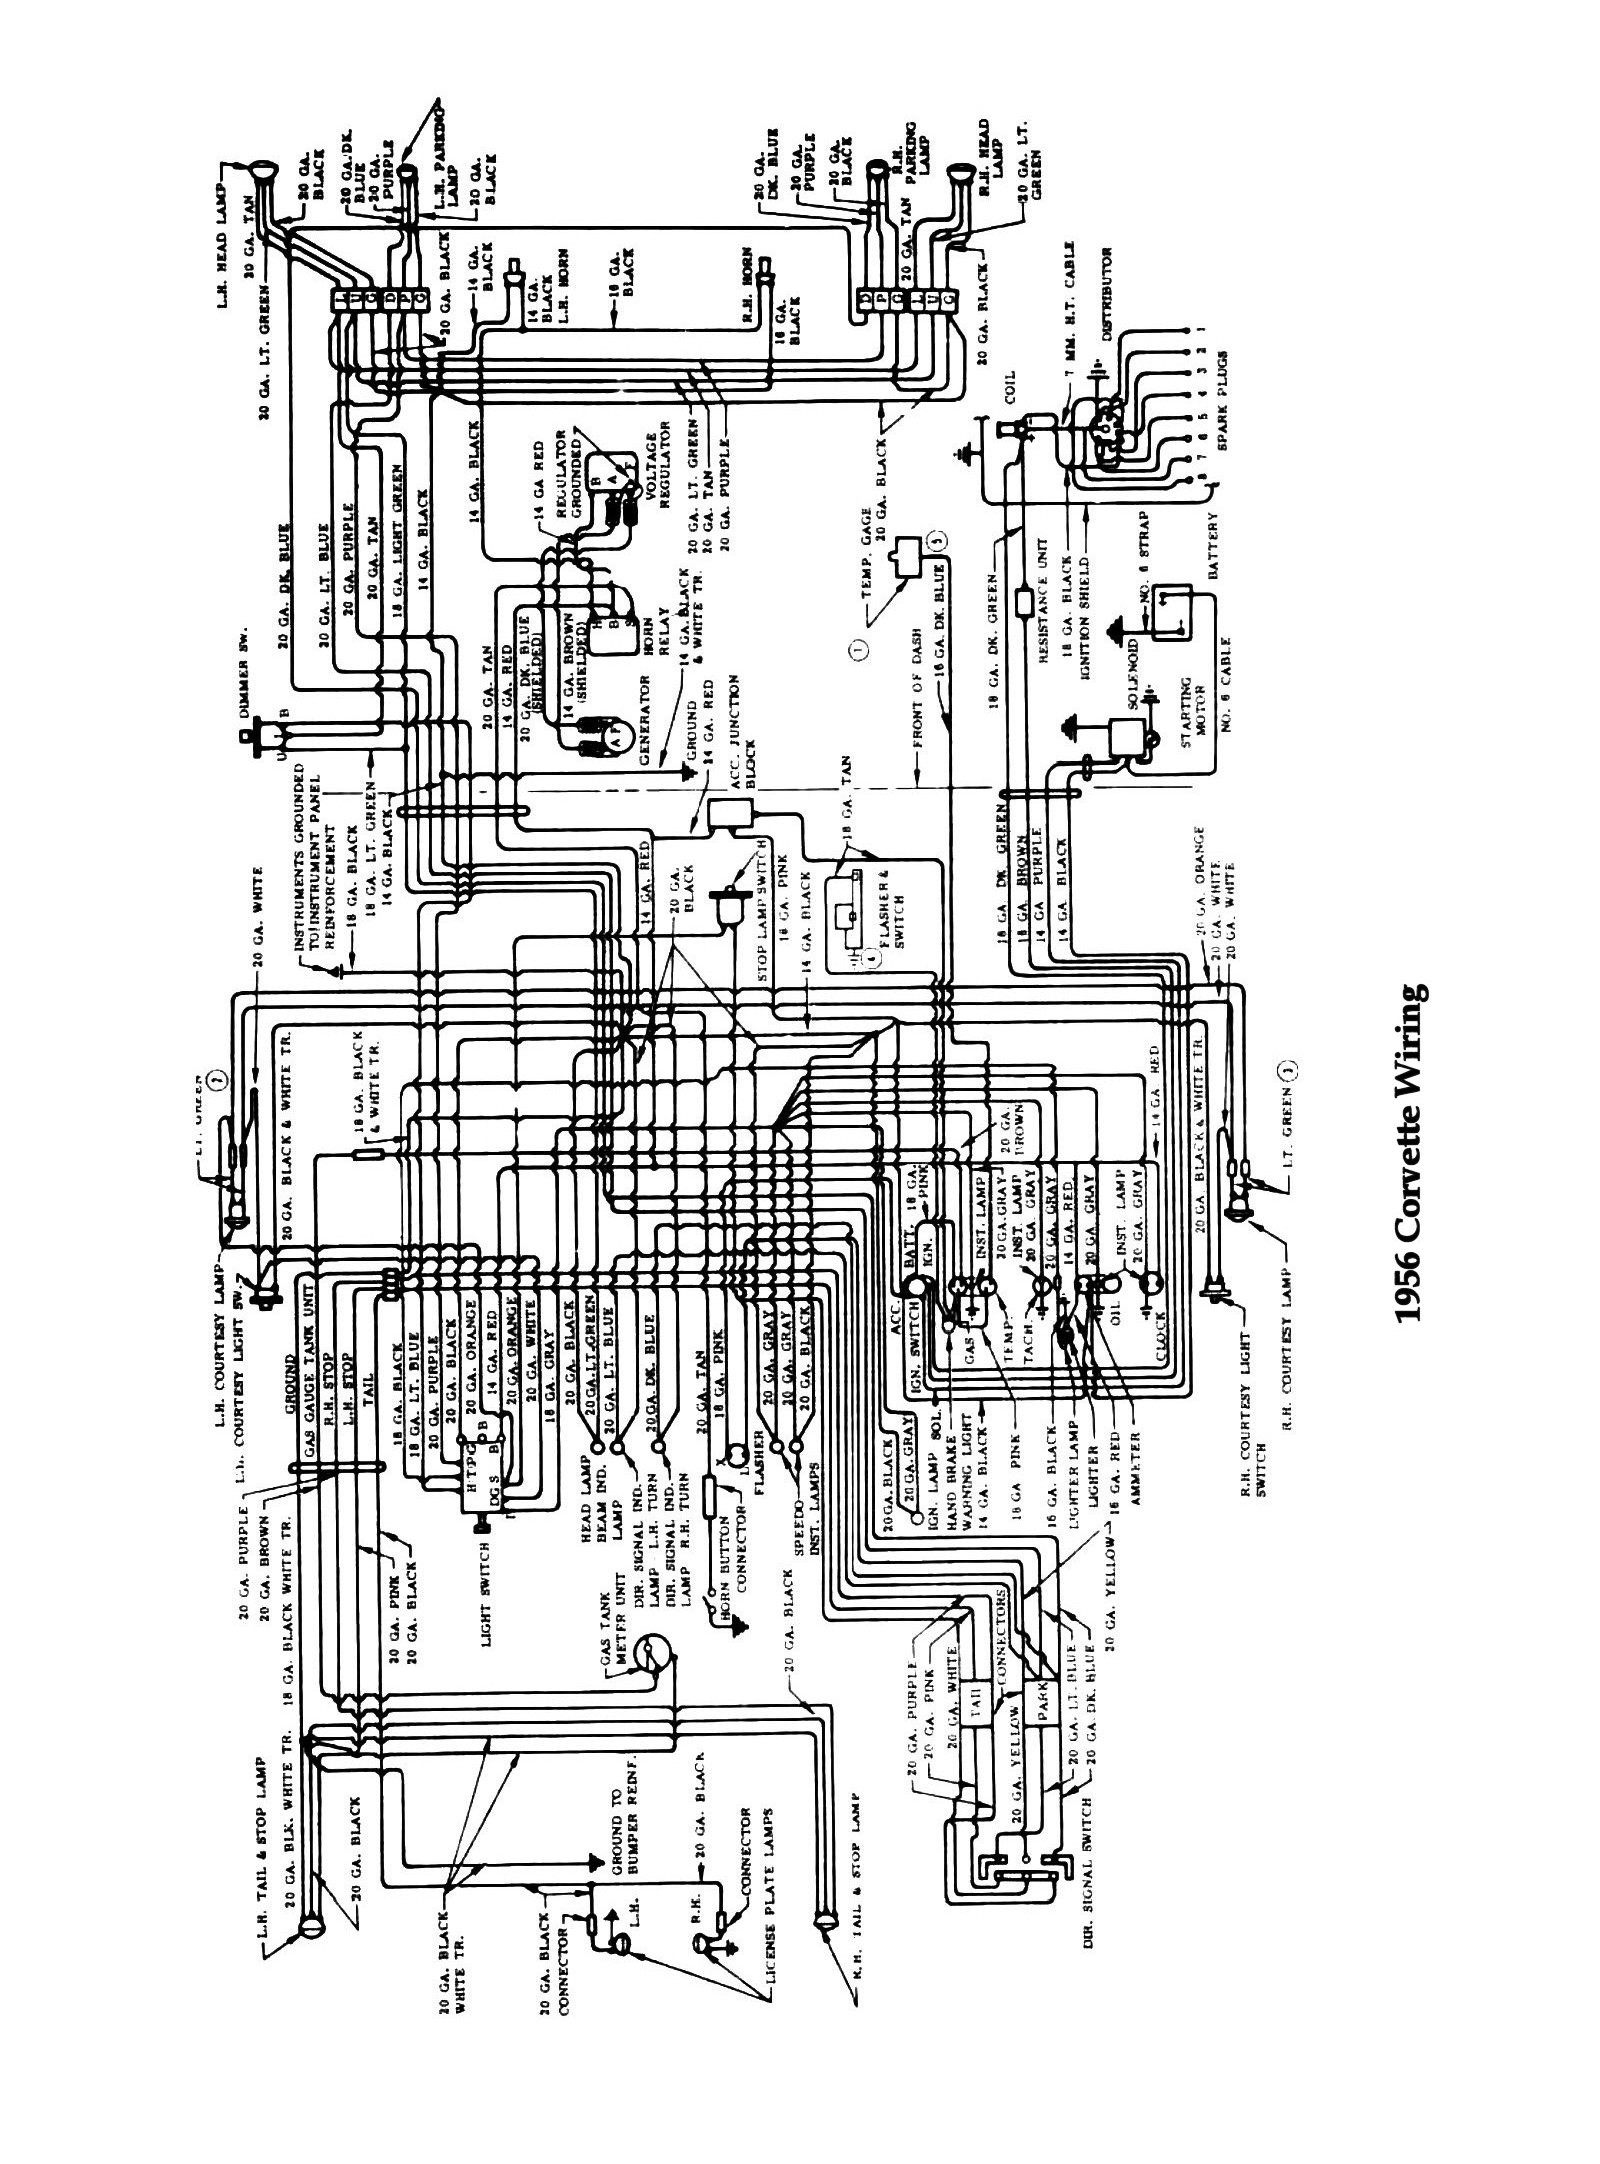 hight resolution of chevy wiring diagrams 66 corvette wiring diagram 1957 corvette wiring 1957 corvette wiring